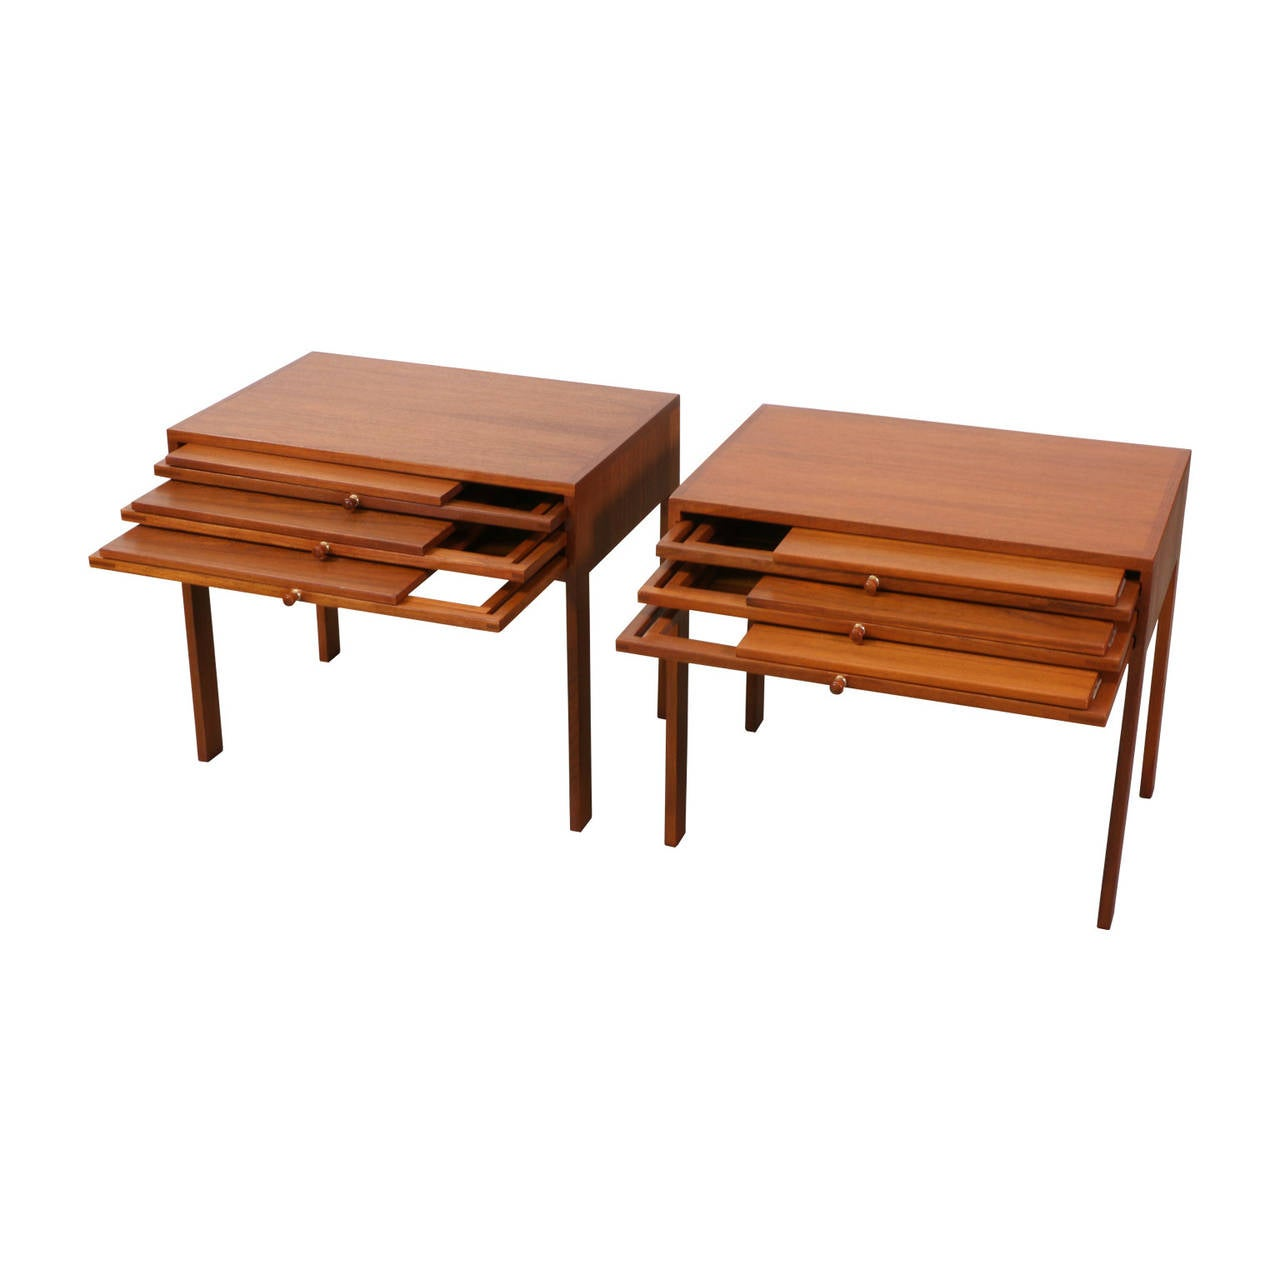 Illum wikkelso table set with three folding side table trays for sale at 1stdibs - Archives departementales 33 tables decennales ...